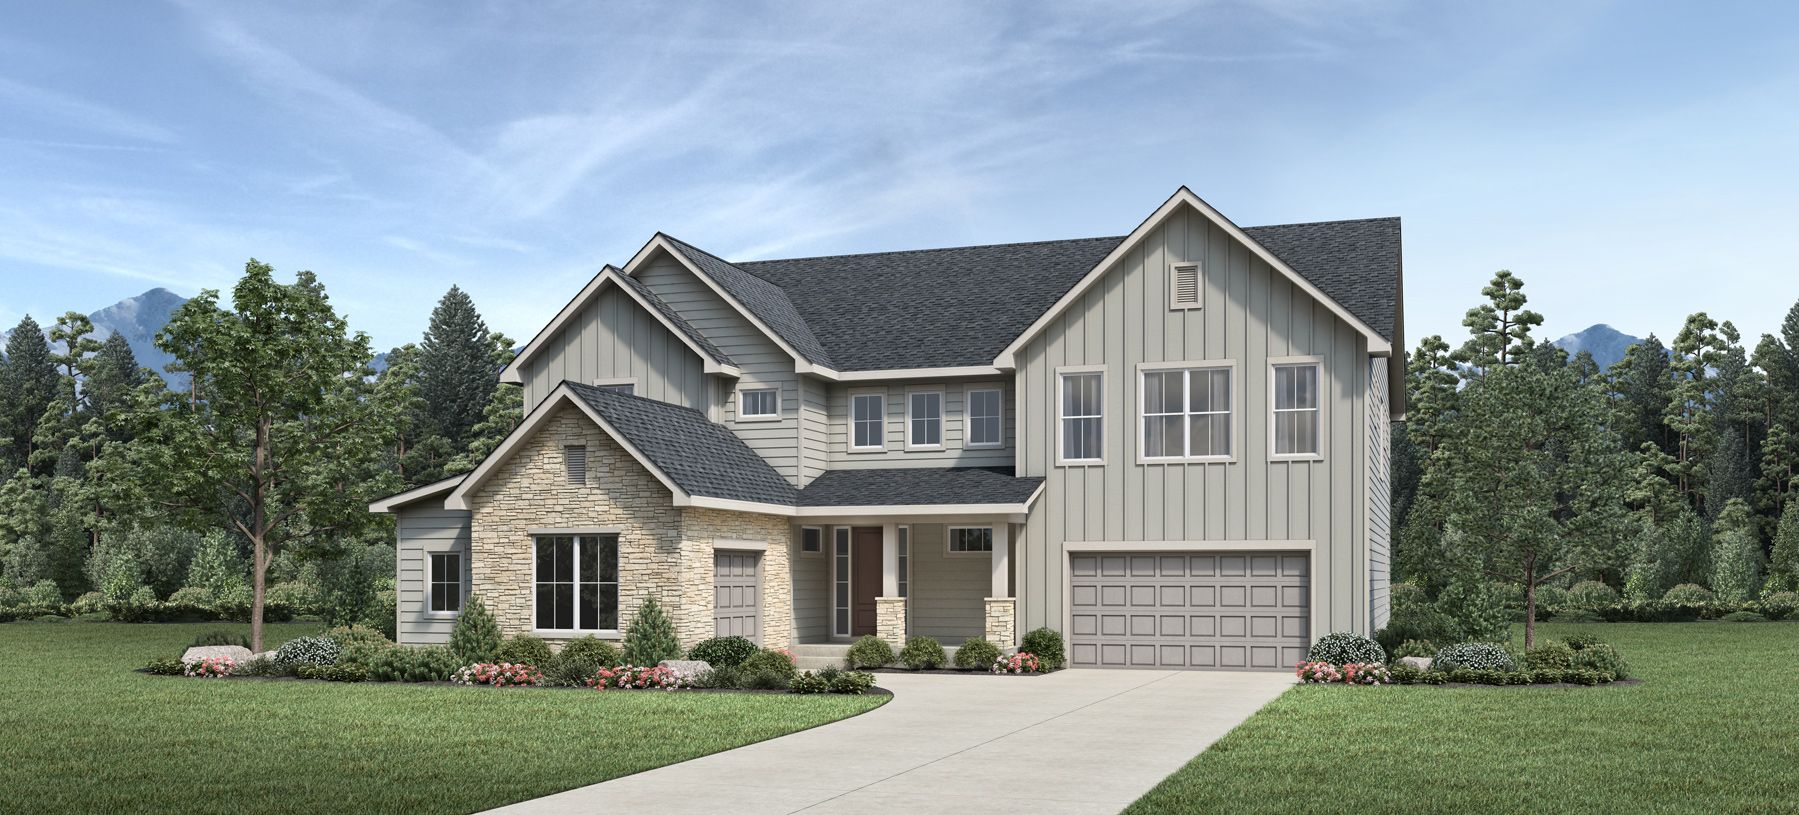 Elevation Image:Modern Farmhouse